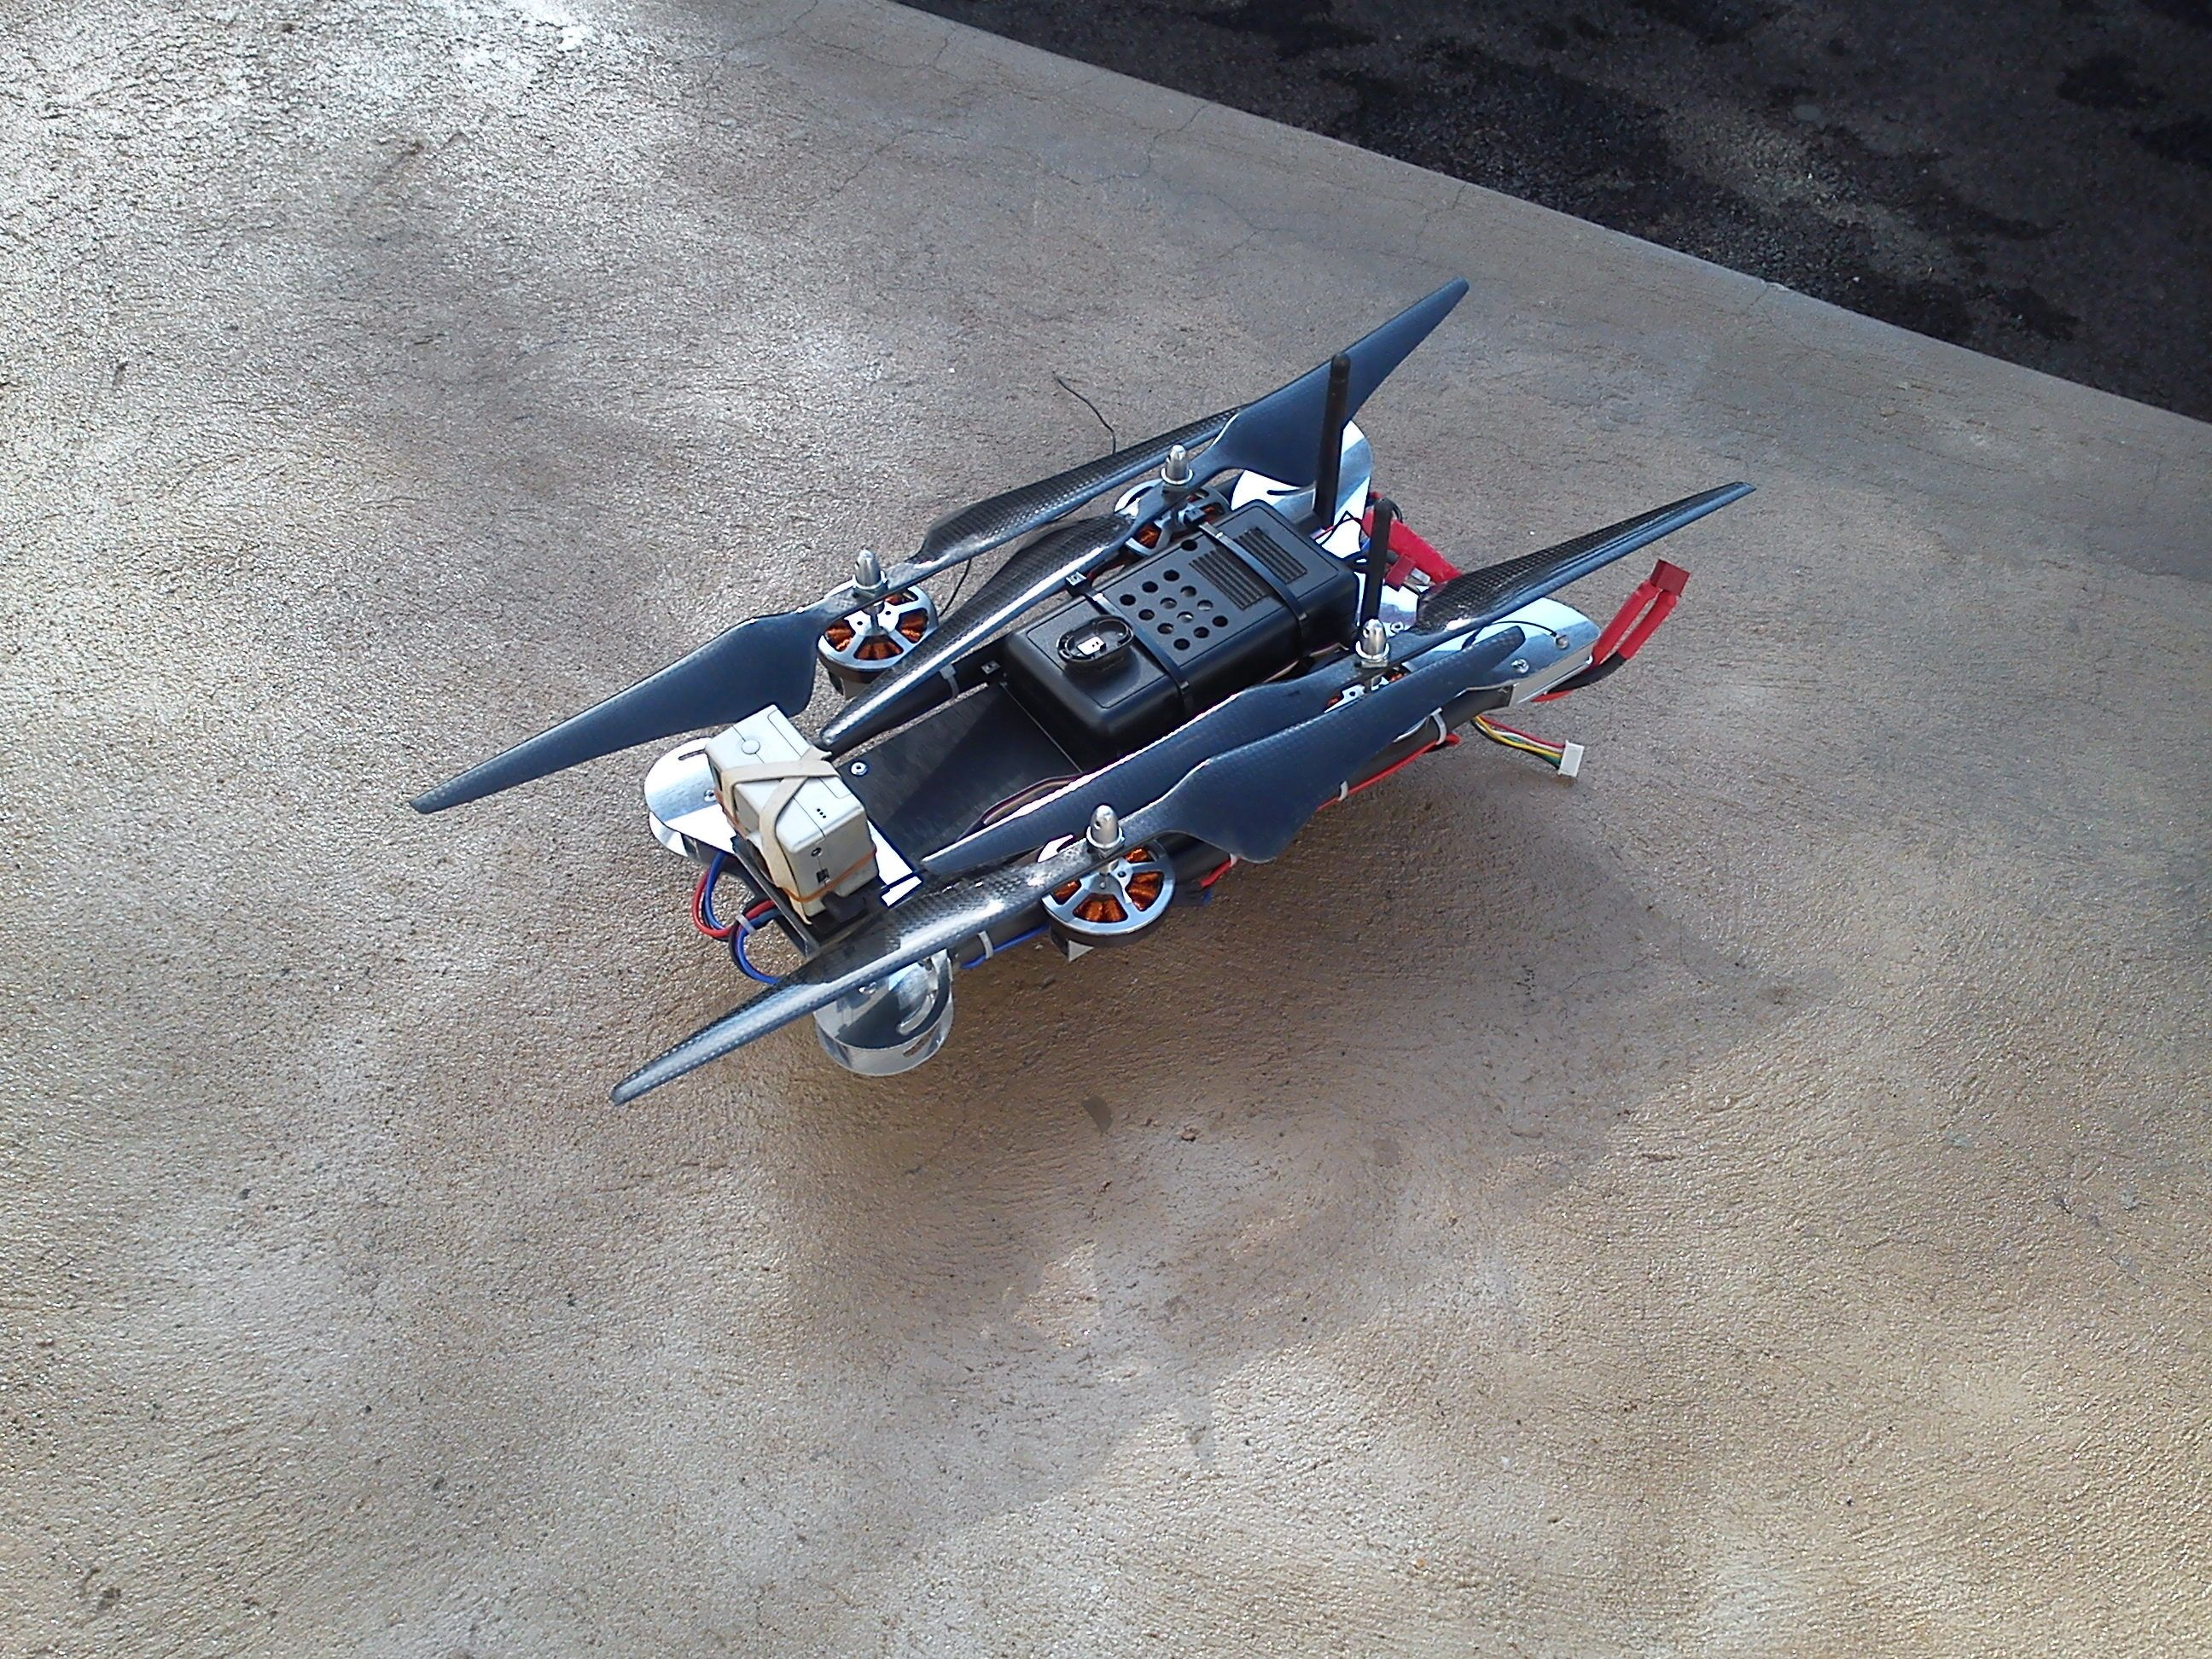 Folding quadcopter for the holidays diy drones rc flying folding quadcopter for the holidays diy drones solutioingenieria Image collections